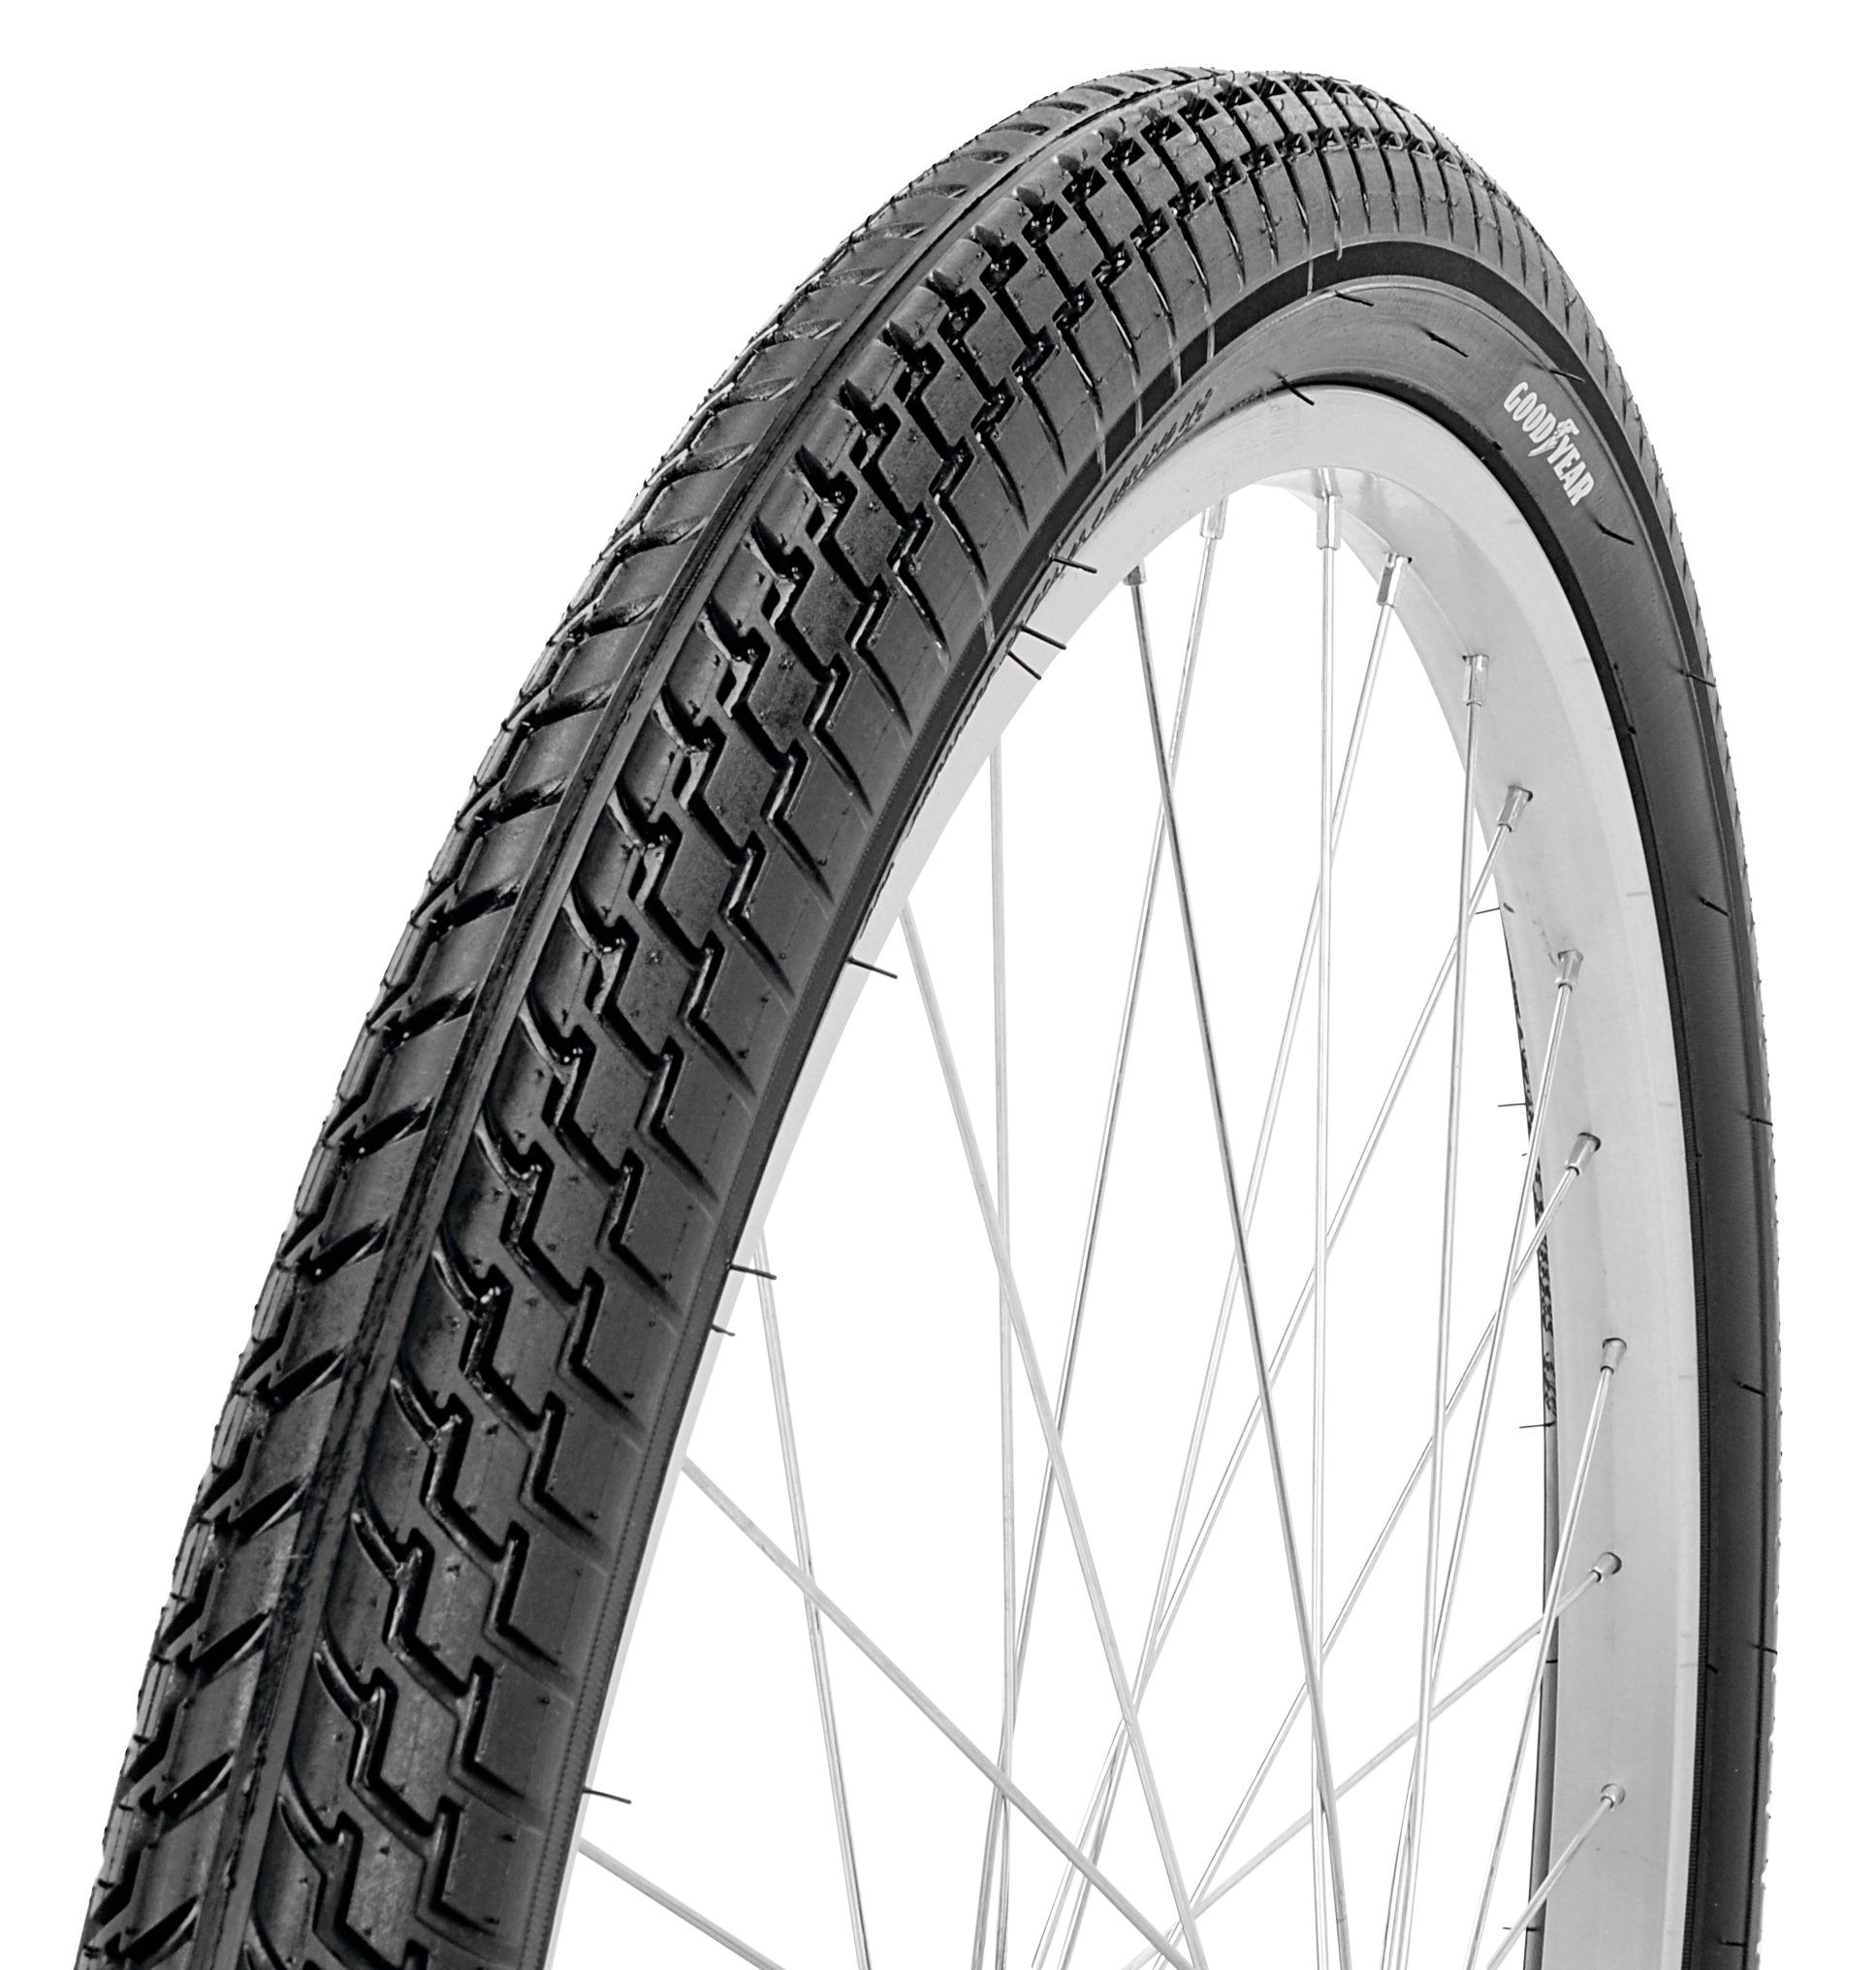 Goodyear Folding Bead Cruiser Bike Tire, 26'' x 2.2125'', Black